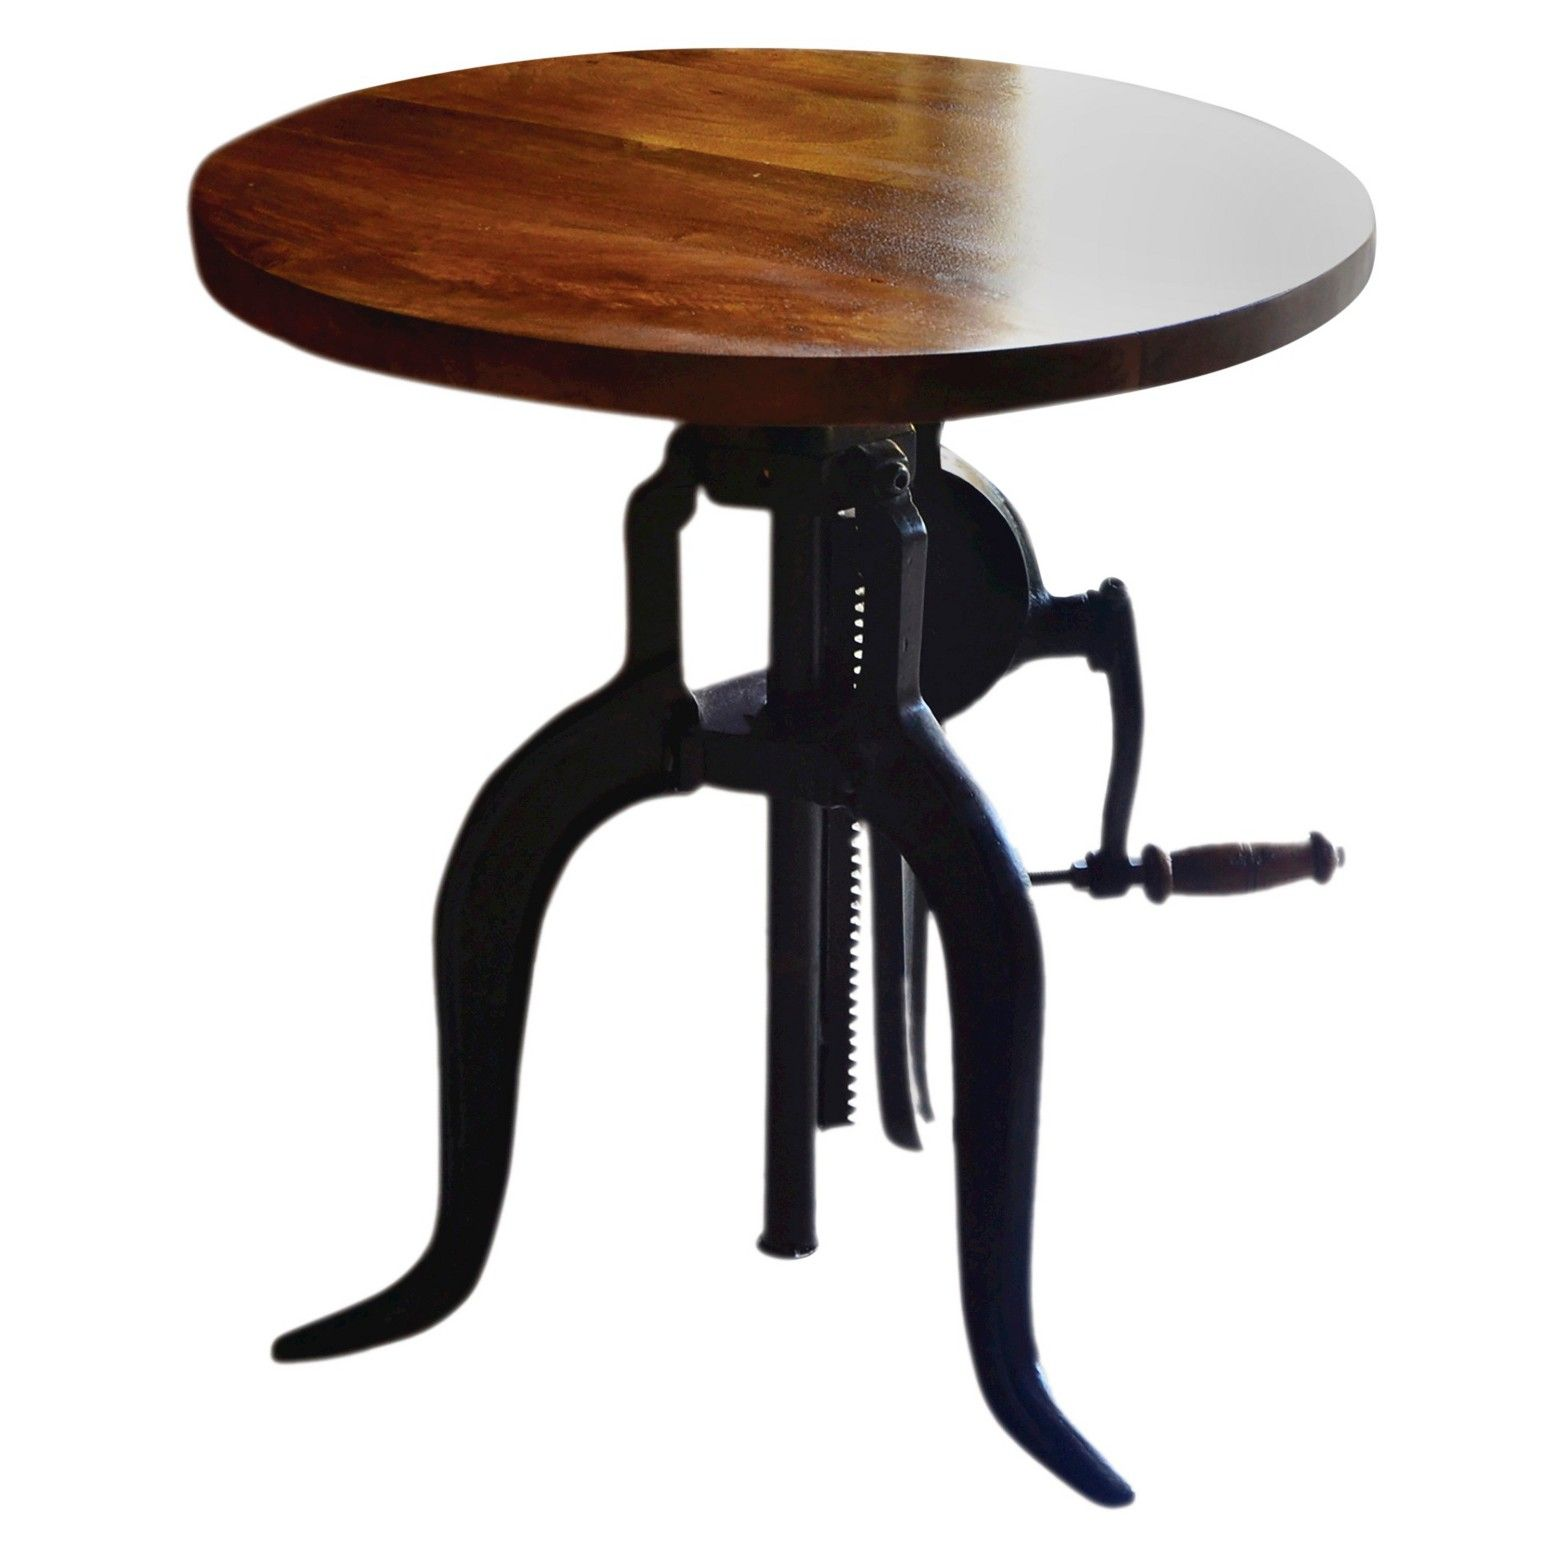 emma adjustable crank accent table chestnut black carolina forge target small antique pedestal dining room storage french furniture company reclaimed wood console pottery barn